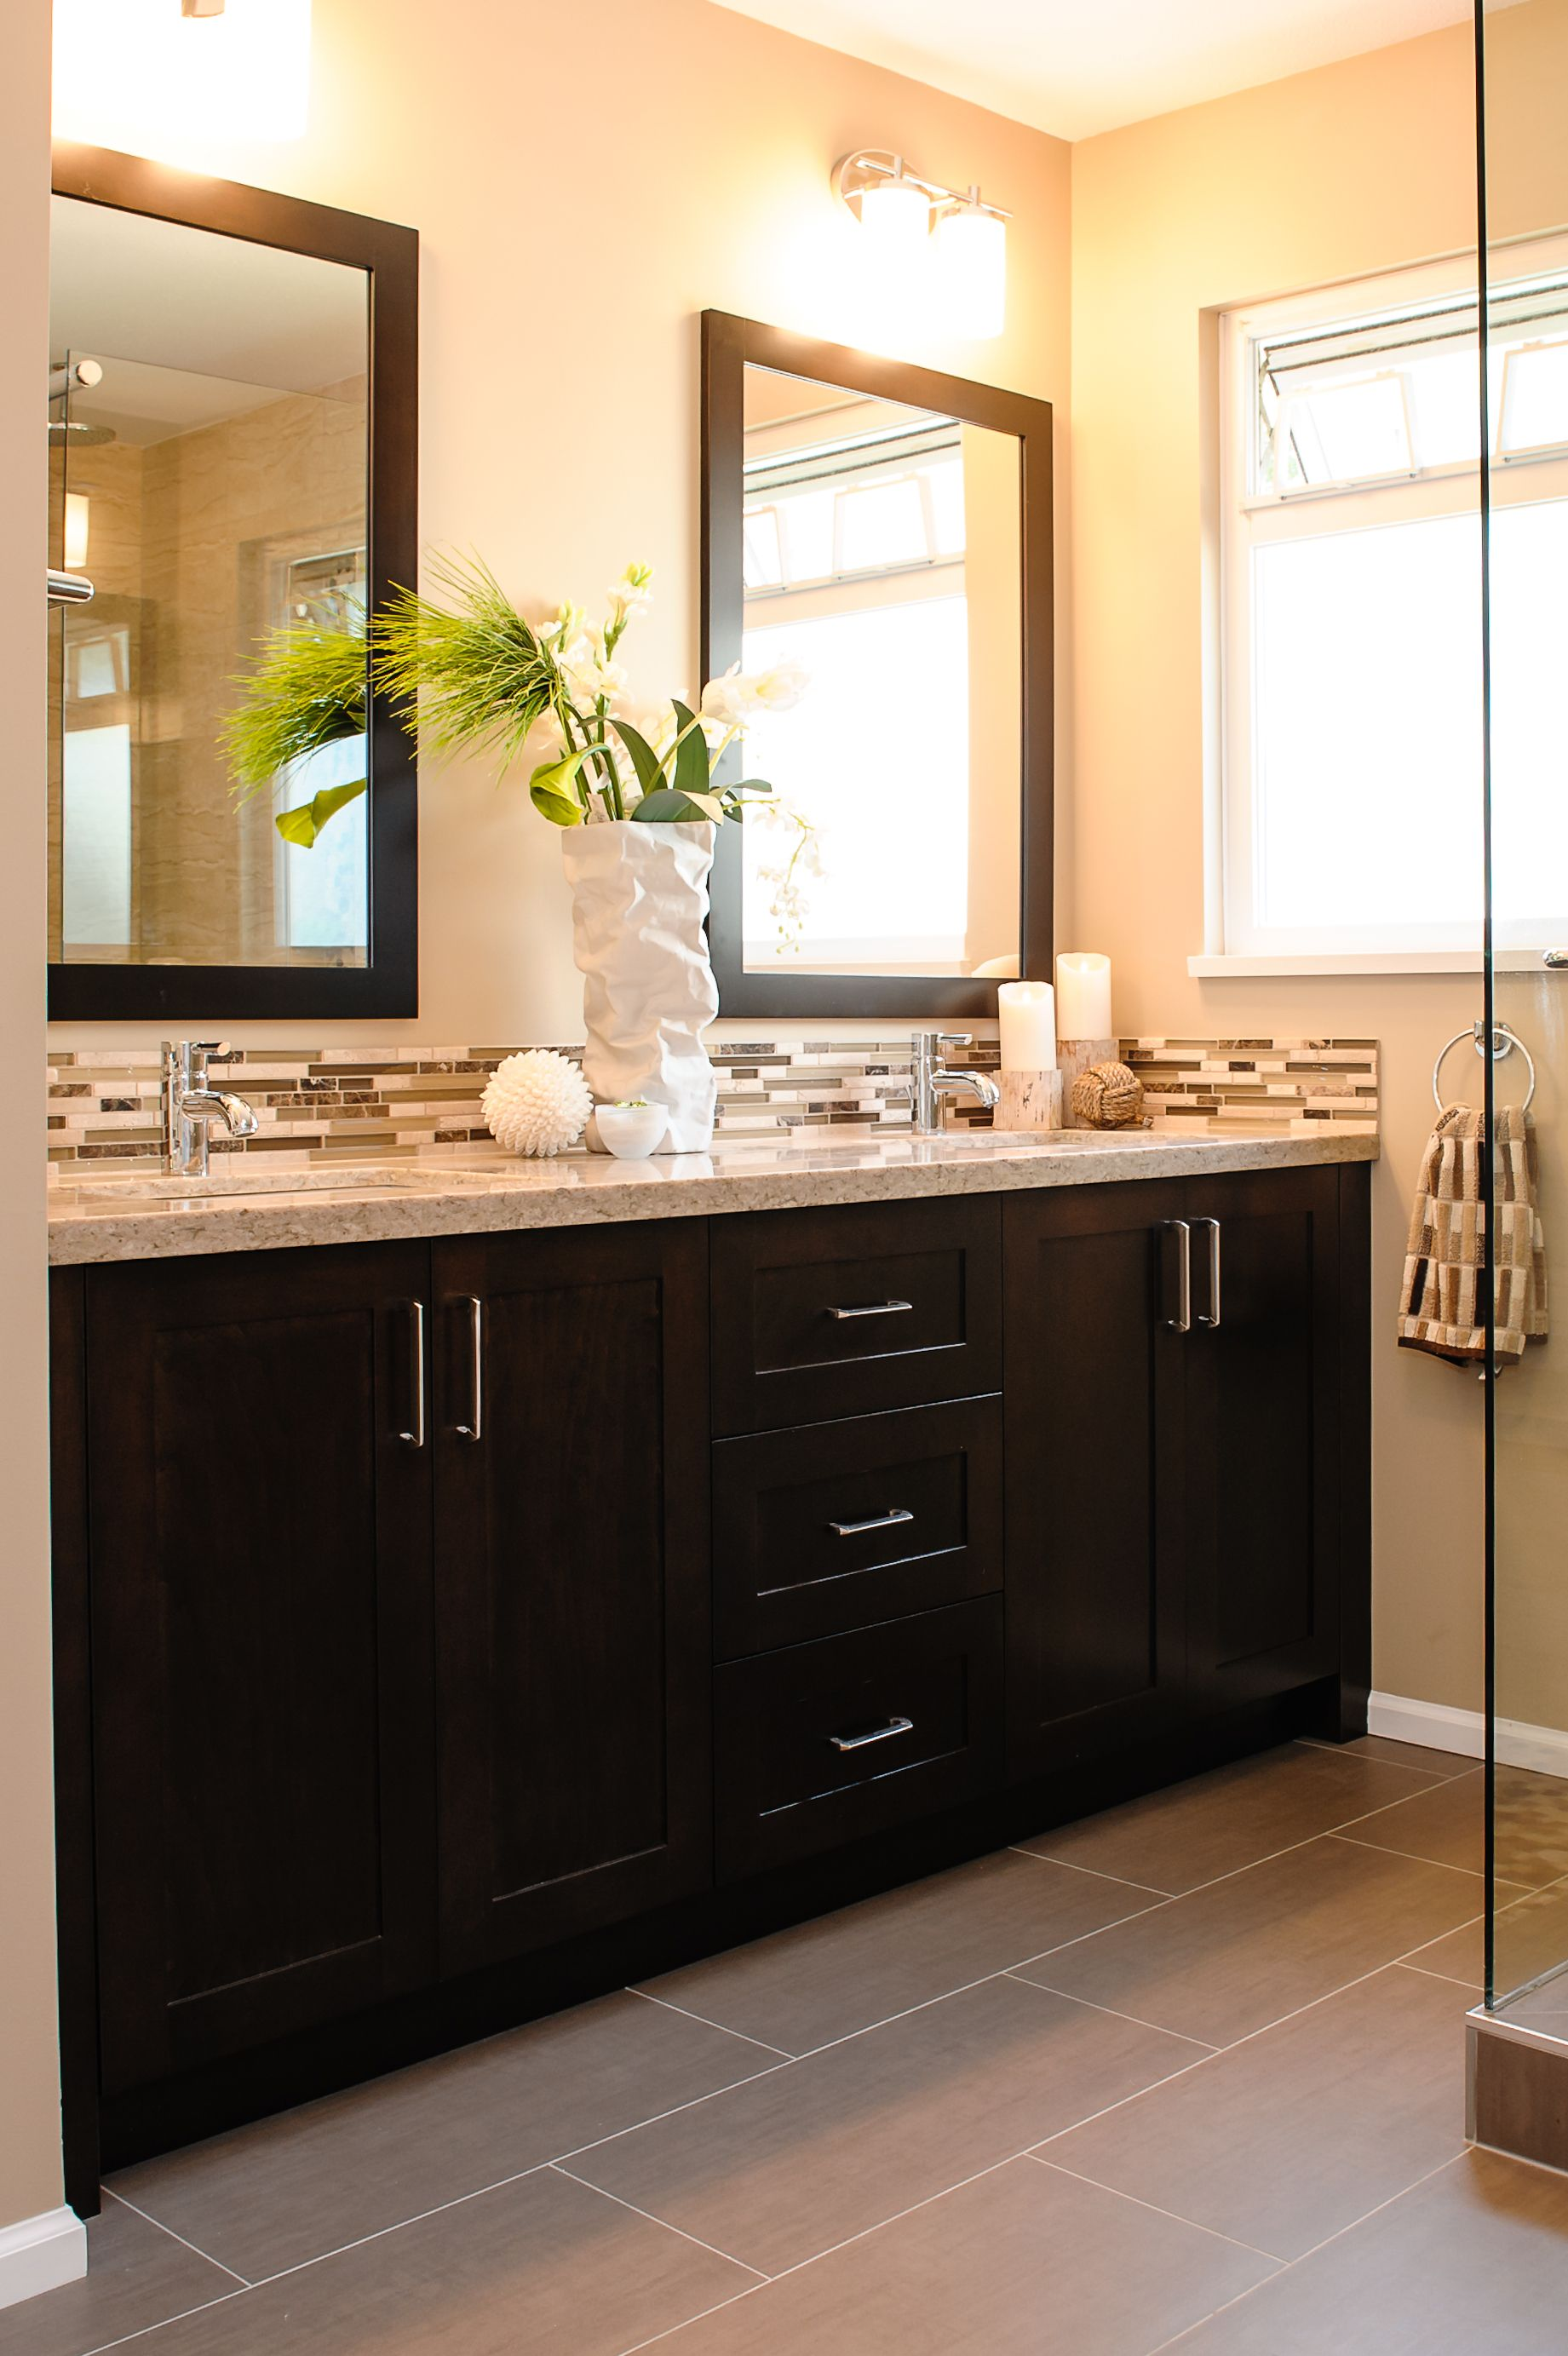 Here S What The 12x24 Gray Tile Would Look Like In A Bathroom With Darker Cabinets Really Balances Room